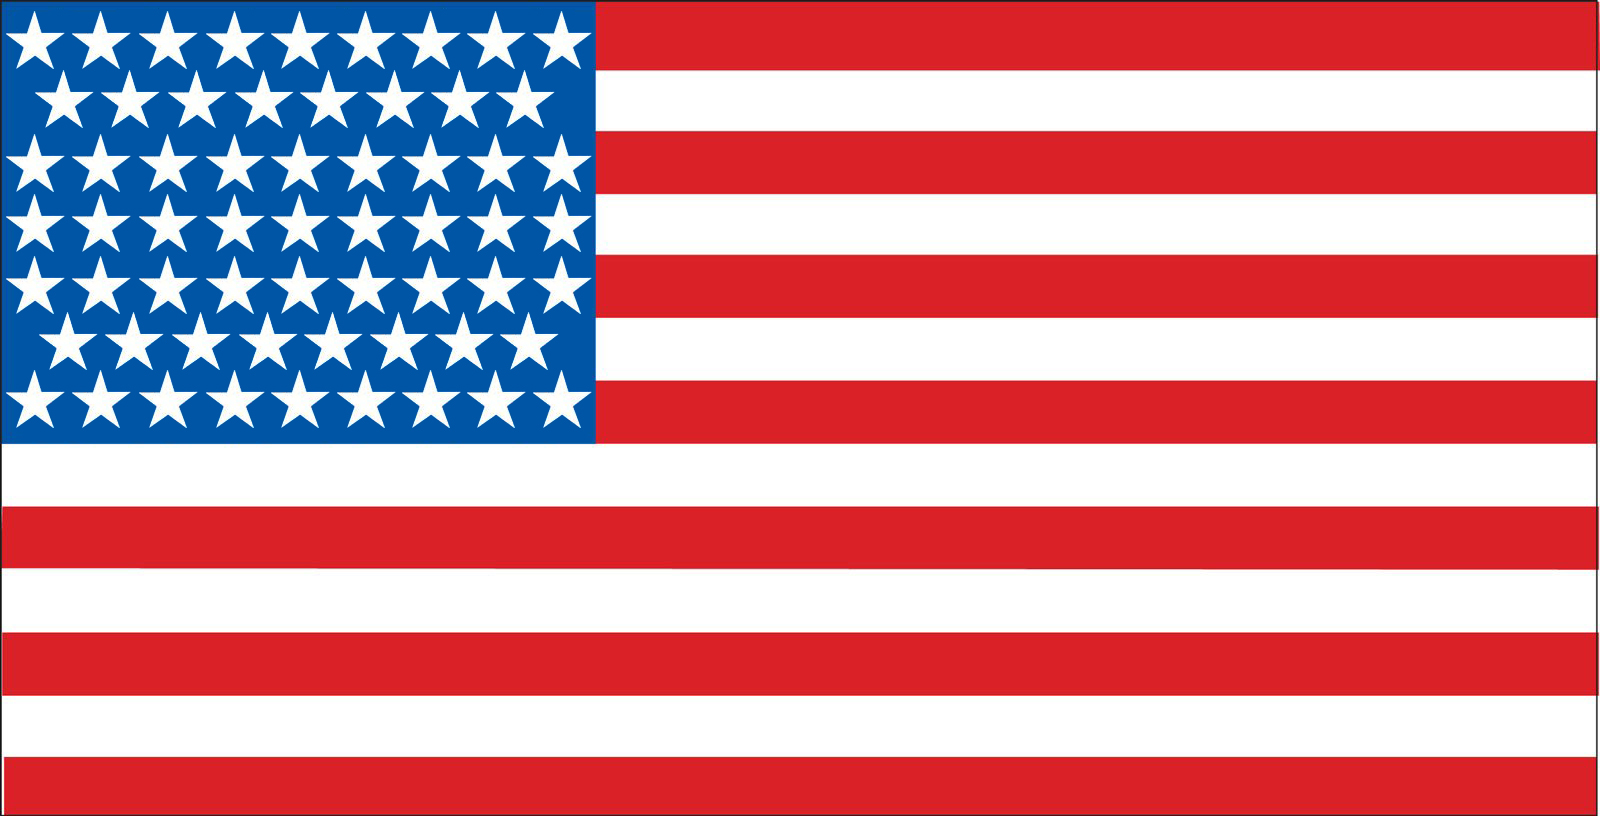 United States American Flag HD Wallpaper 3596 Wallpaper computer 1600x816